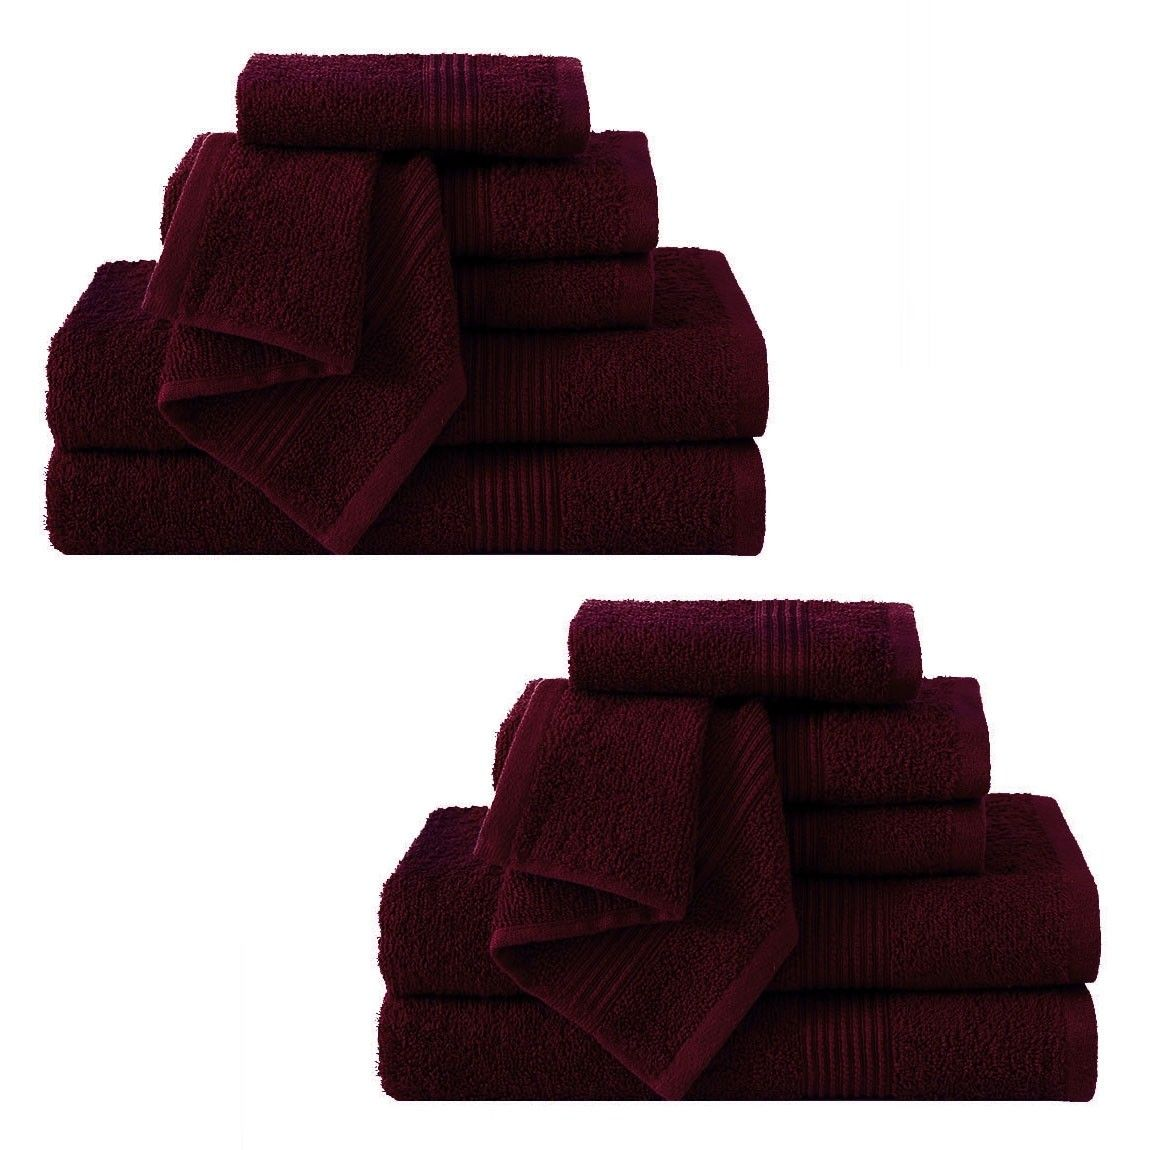 Vcny Ribbed Luxury 12 Piece Bath Towel Set Downtown Collection 100 Cotton Burgundy